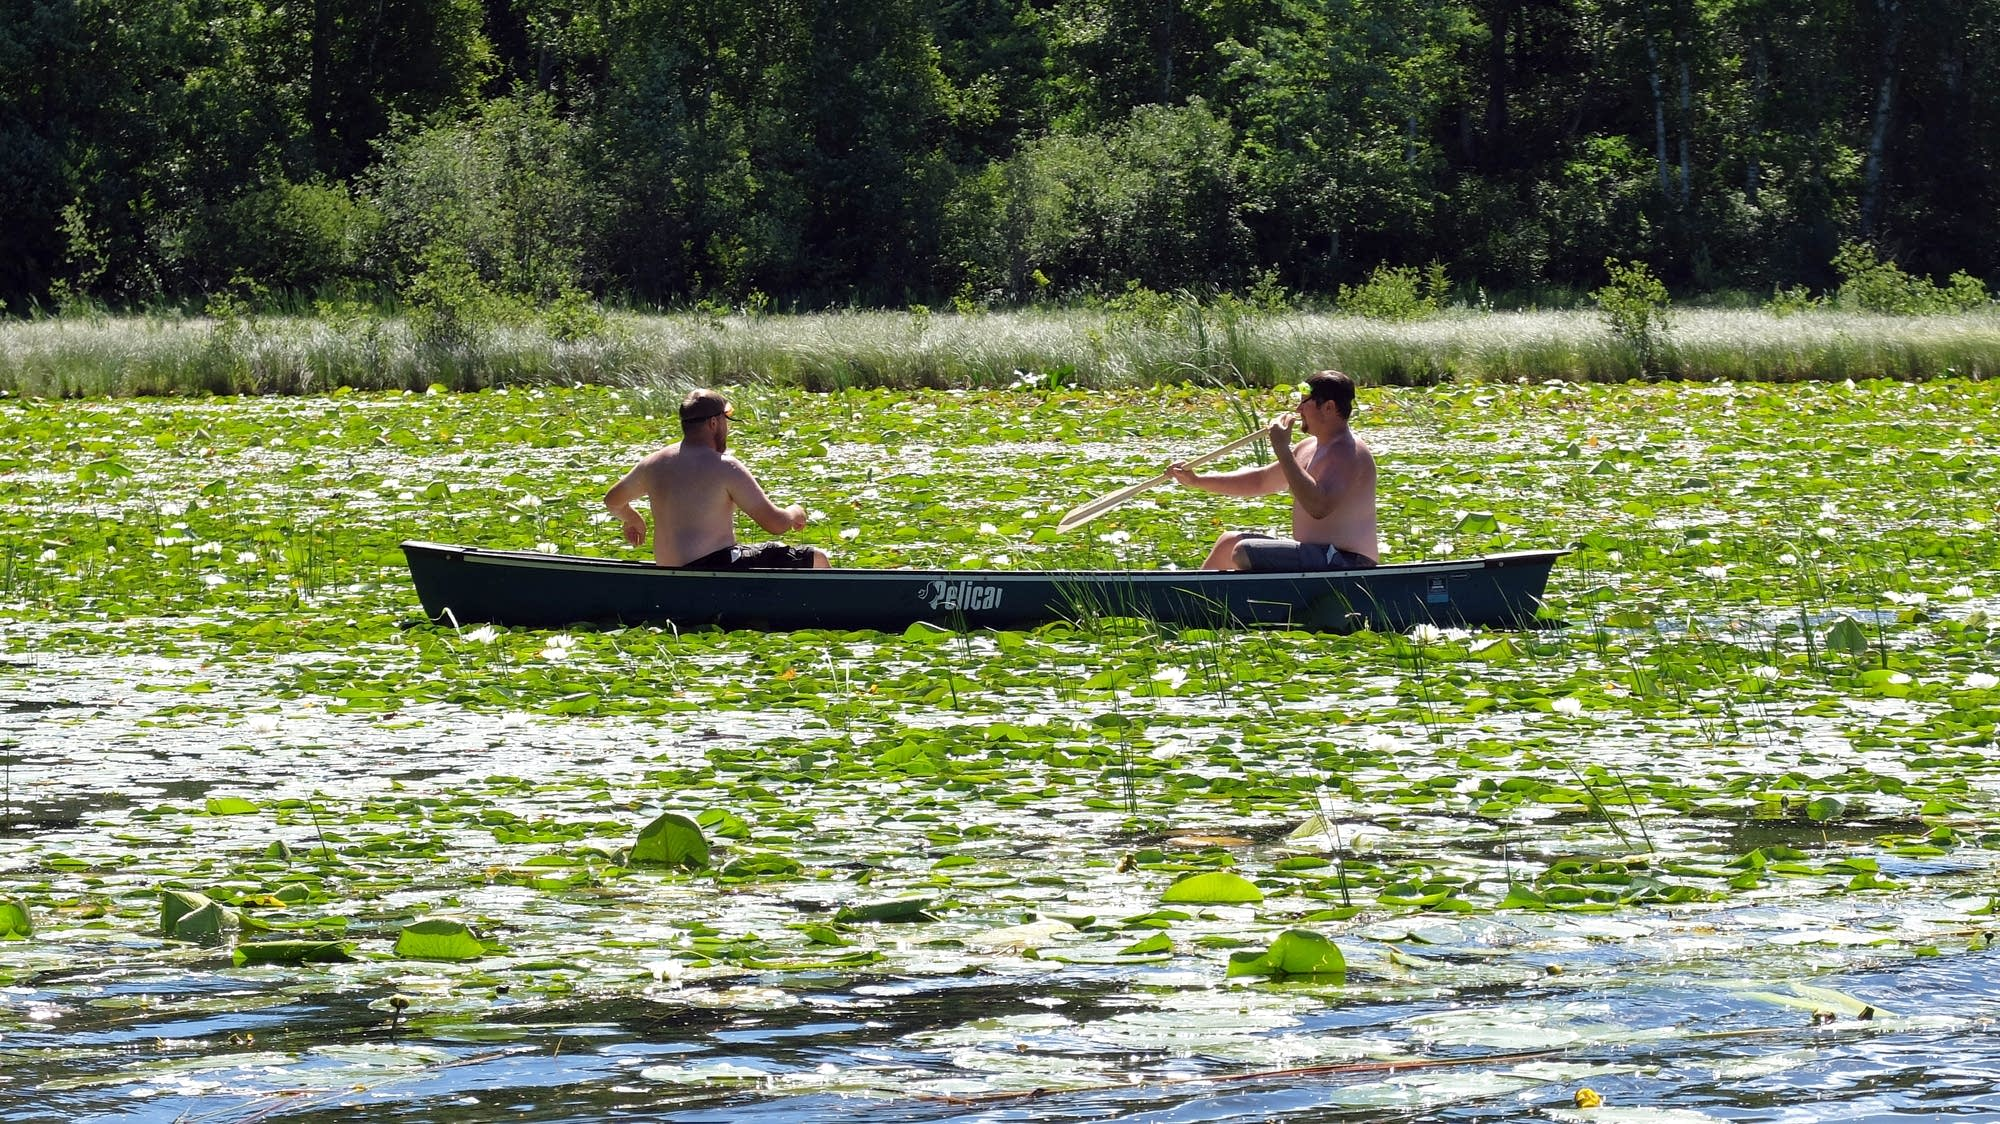 Scouting on Spider Lake in Itasca County, Minn.